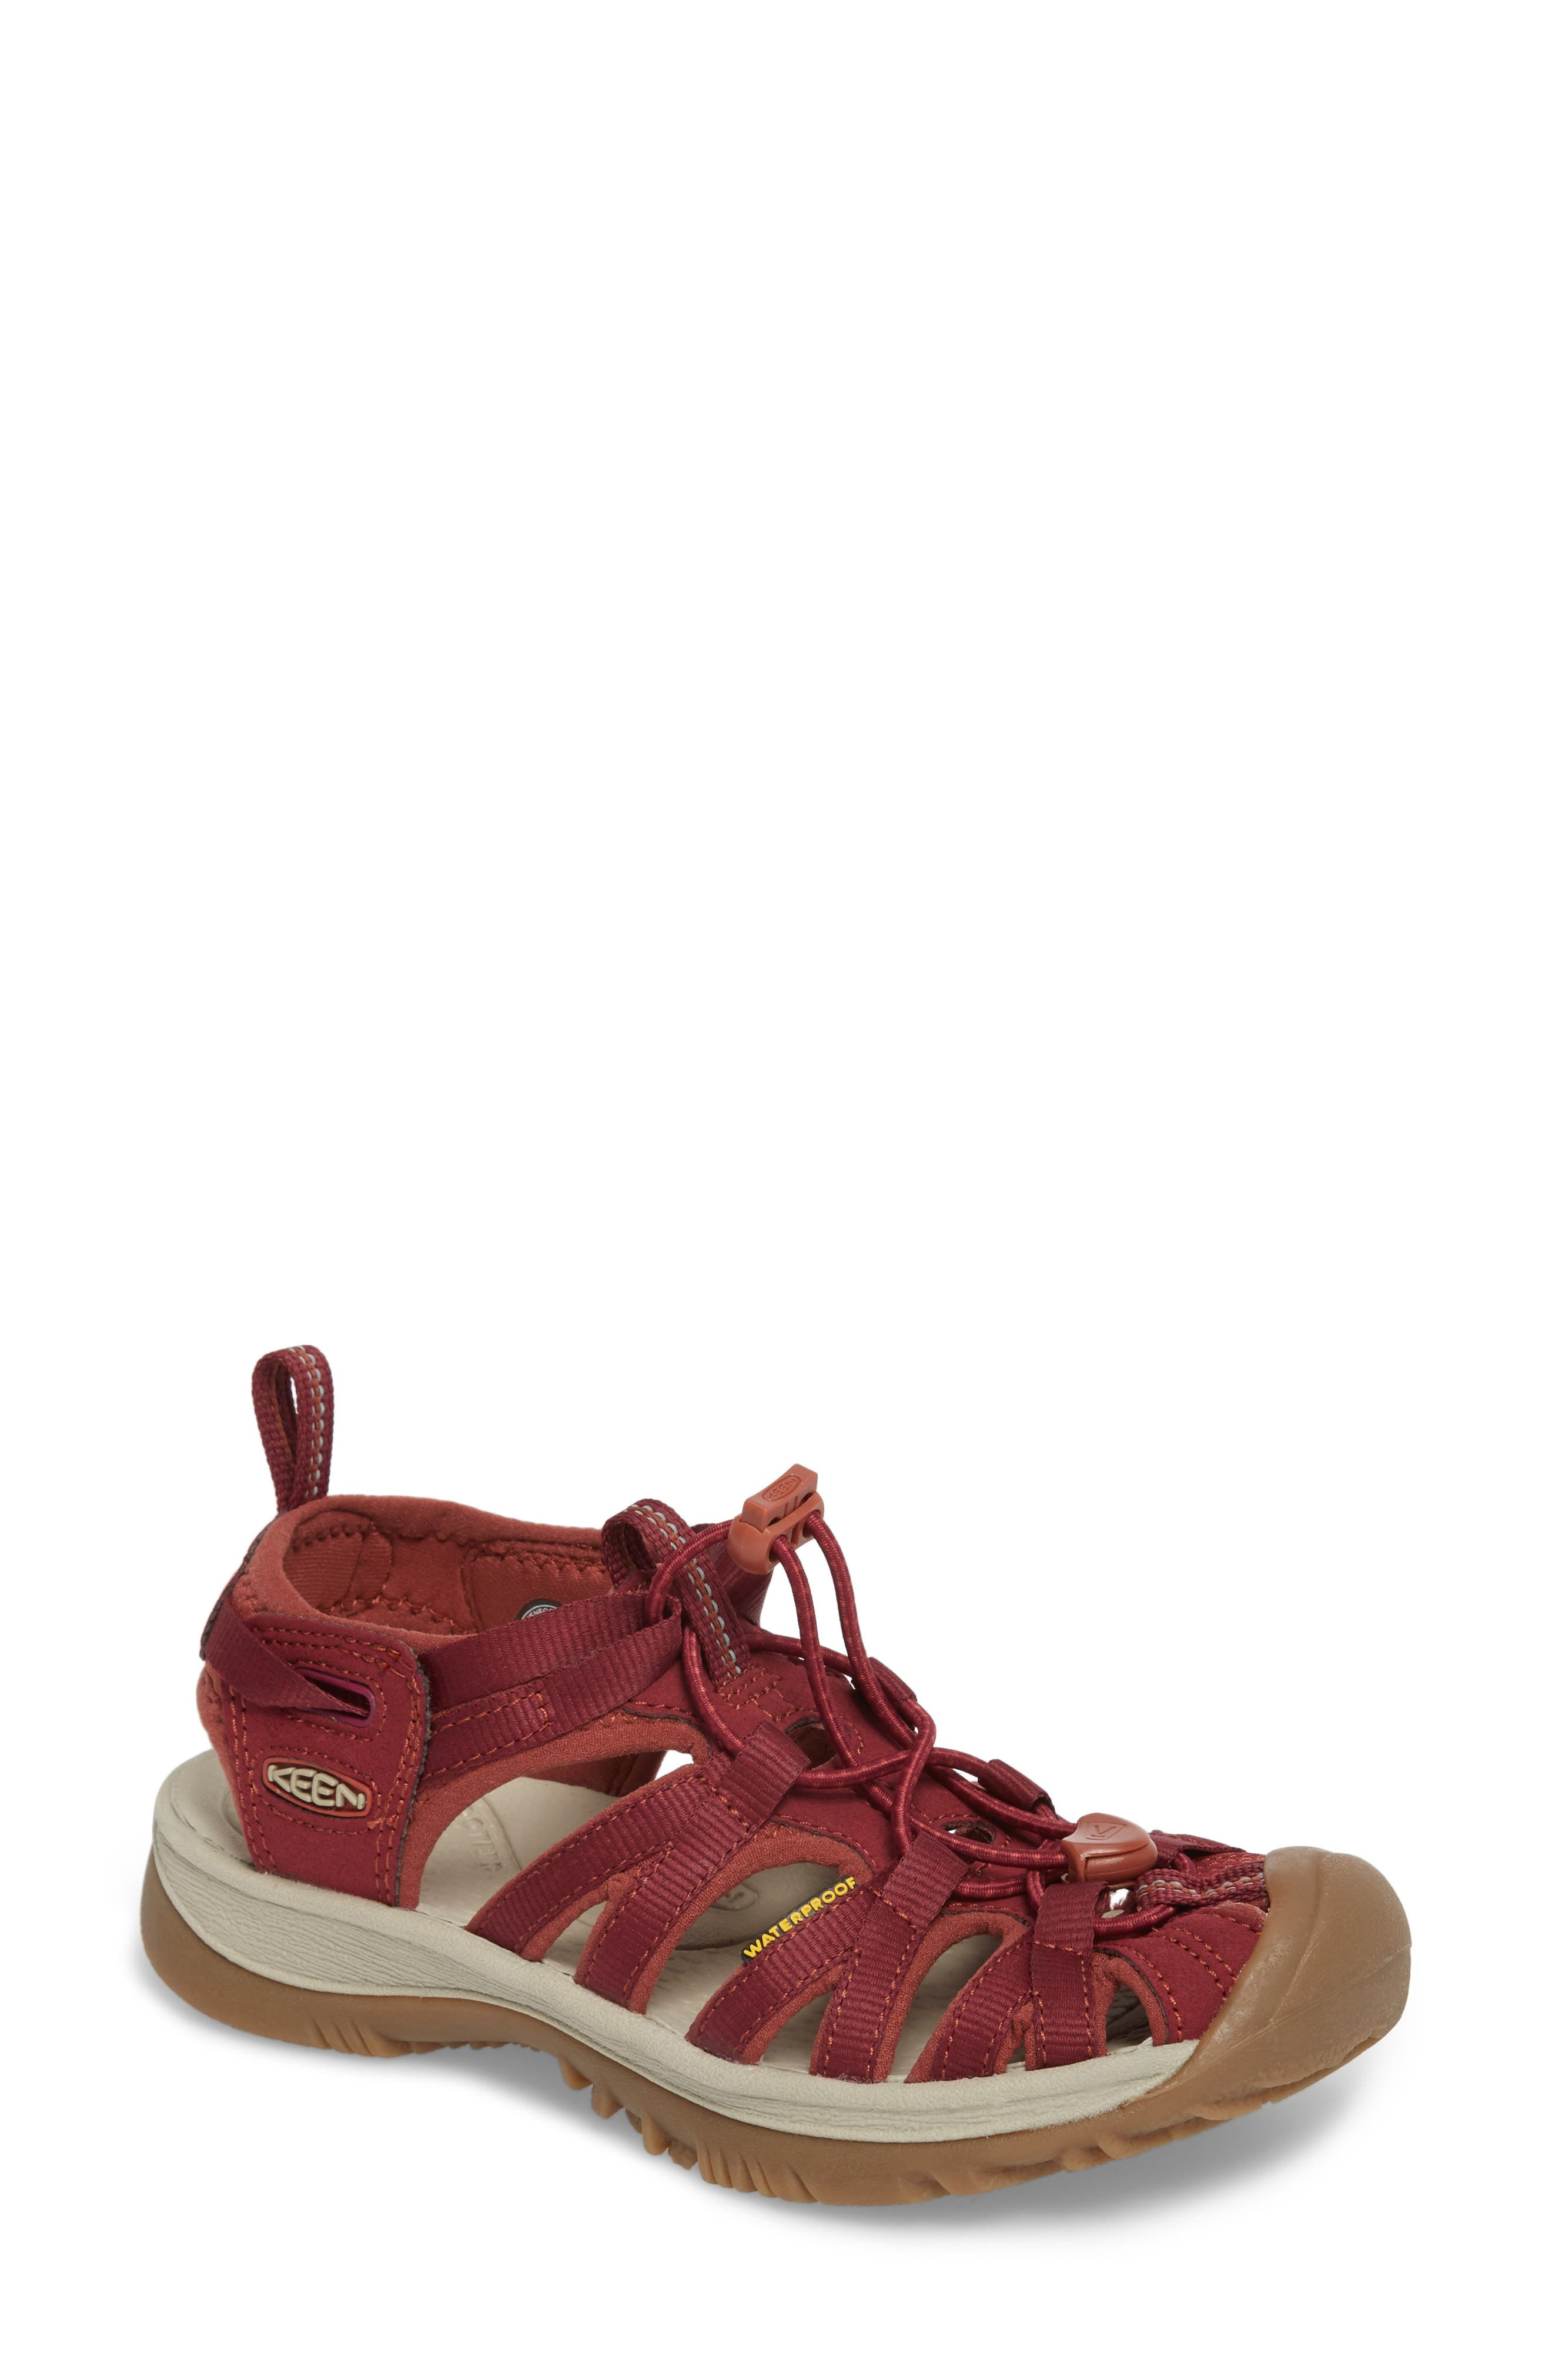 'Whisper' Water Friendly Sport Sandal,                         Main,                         color, Rhododendron/ Marsala